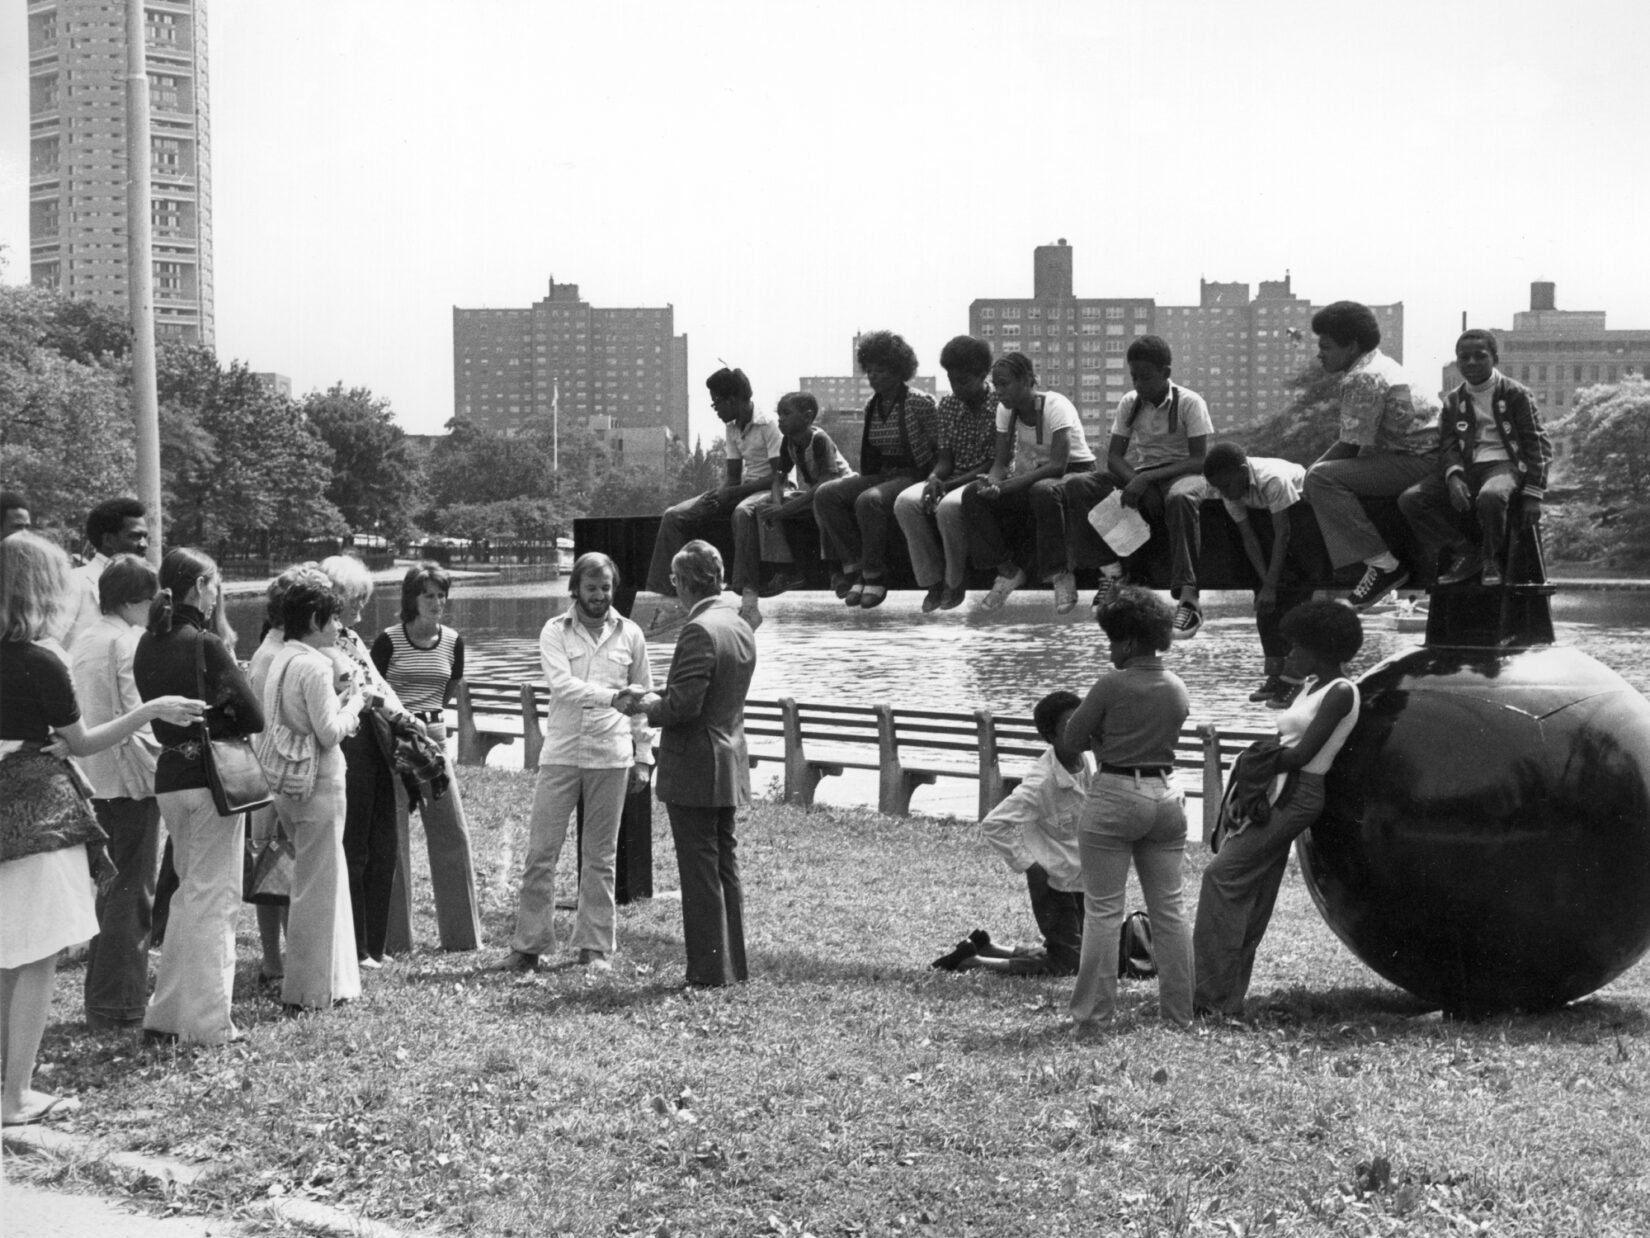 A black and white photo of the sculpture on the banks of the Meer, with people surrounding and sitting on top of it.